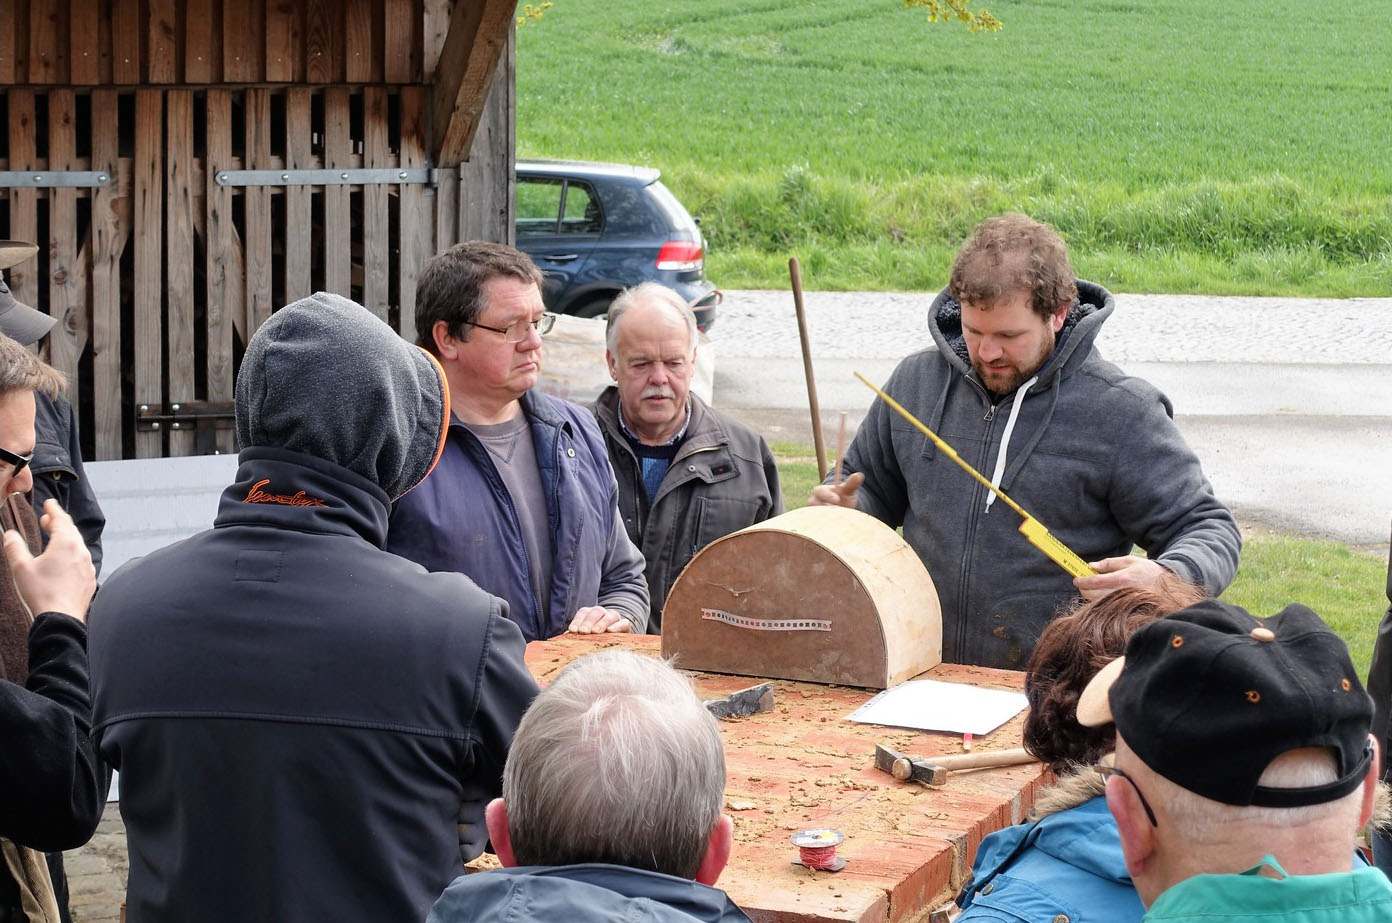 02_ofenbau-workshop_23-04-2016_klein.jpg